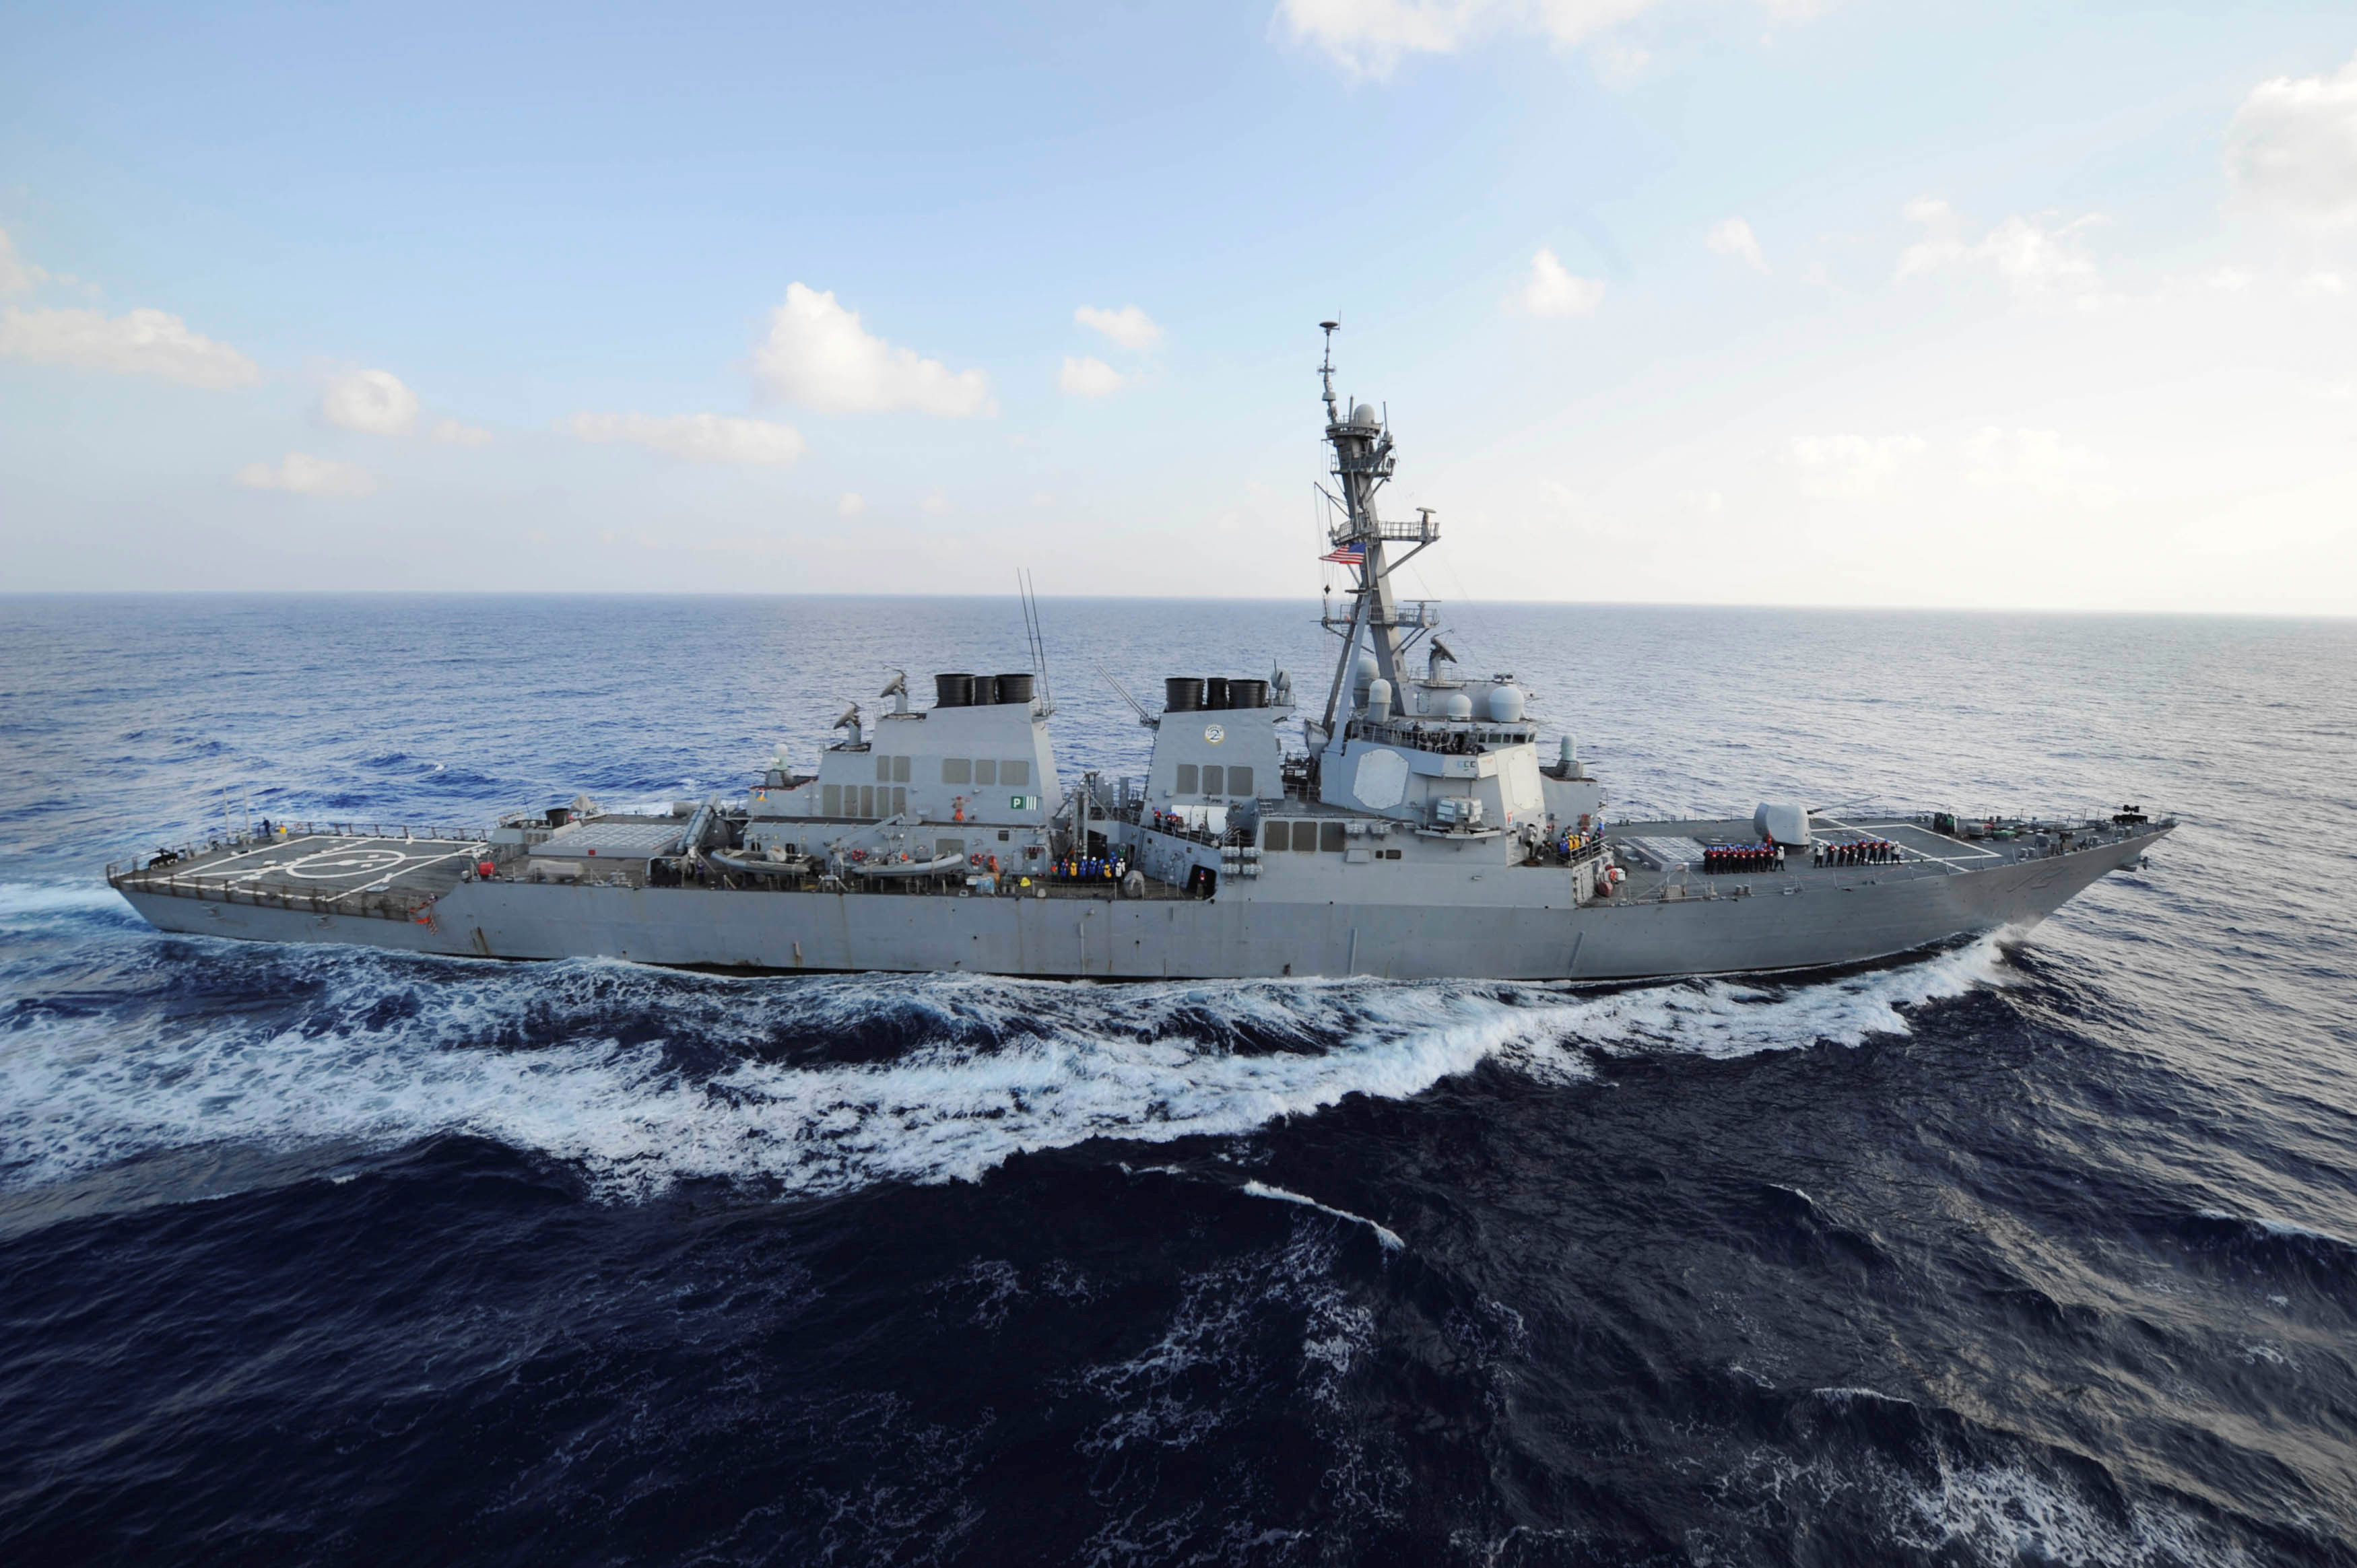 File - The guided-missile destroyer USS Mahan transits the Mediterranean Sea in this Aug. 31, 2012, handout photo.